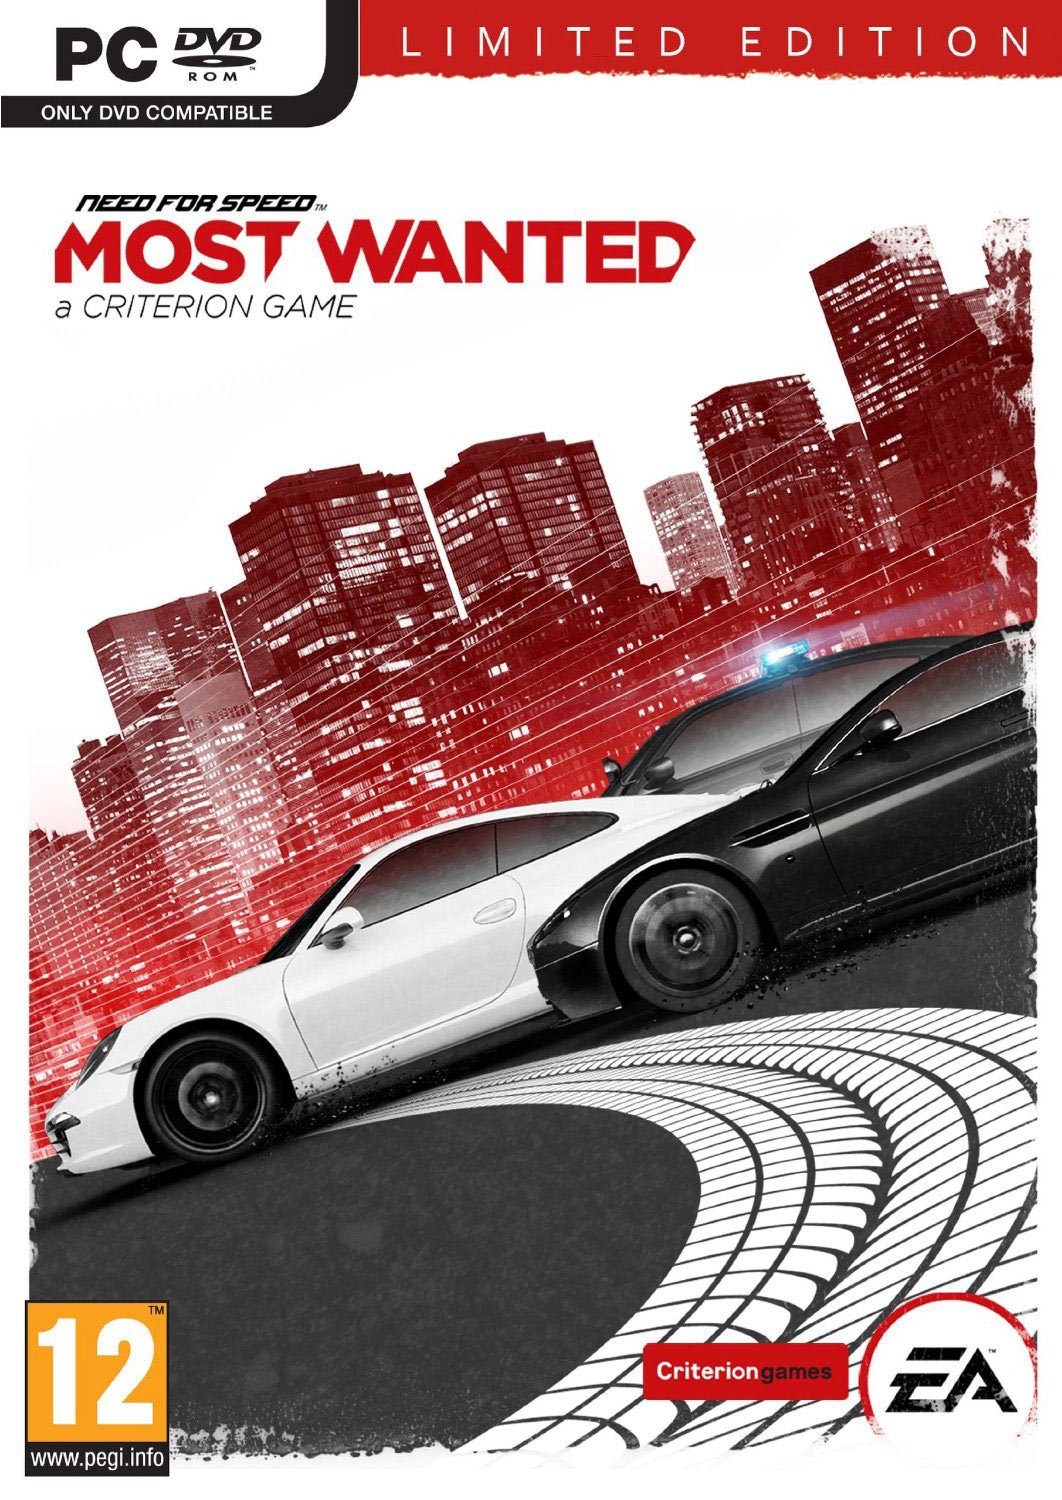 descargar need for speed most wanted para pc full en espanol gratis